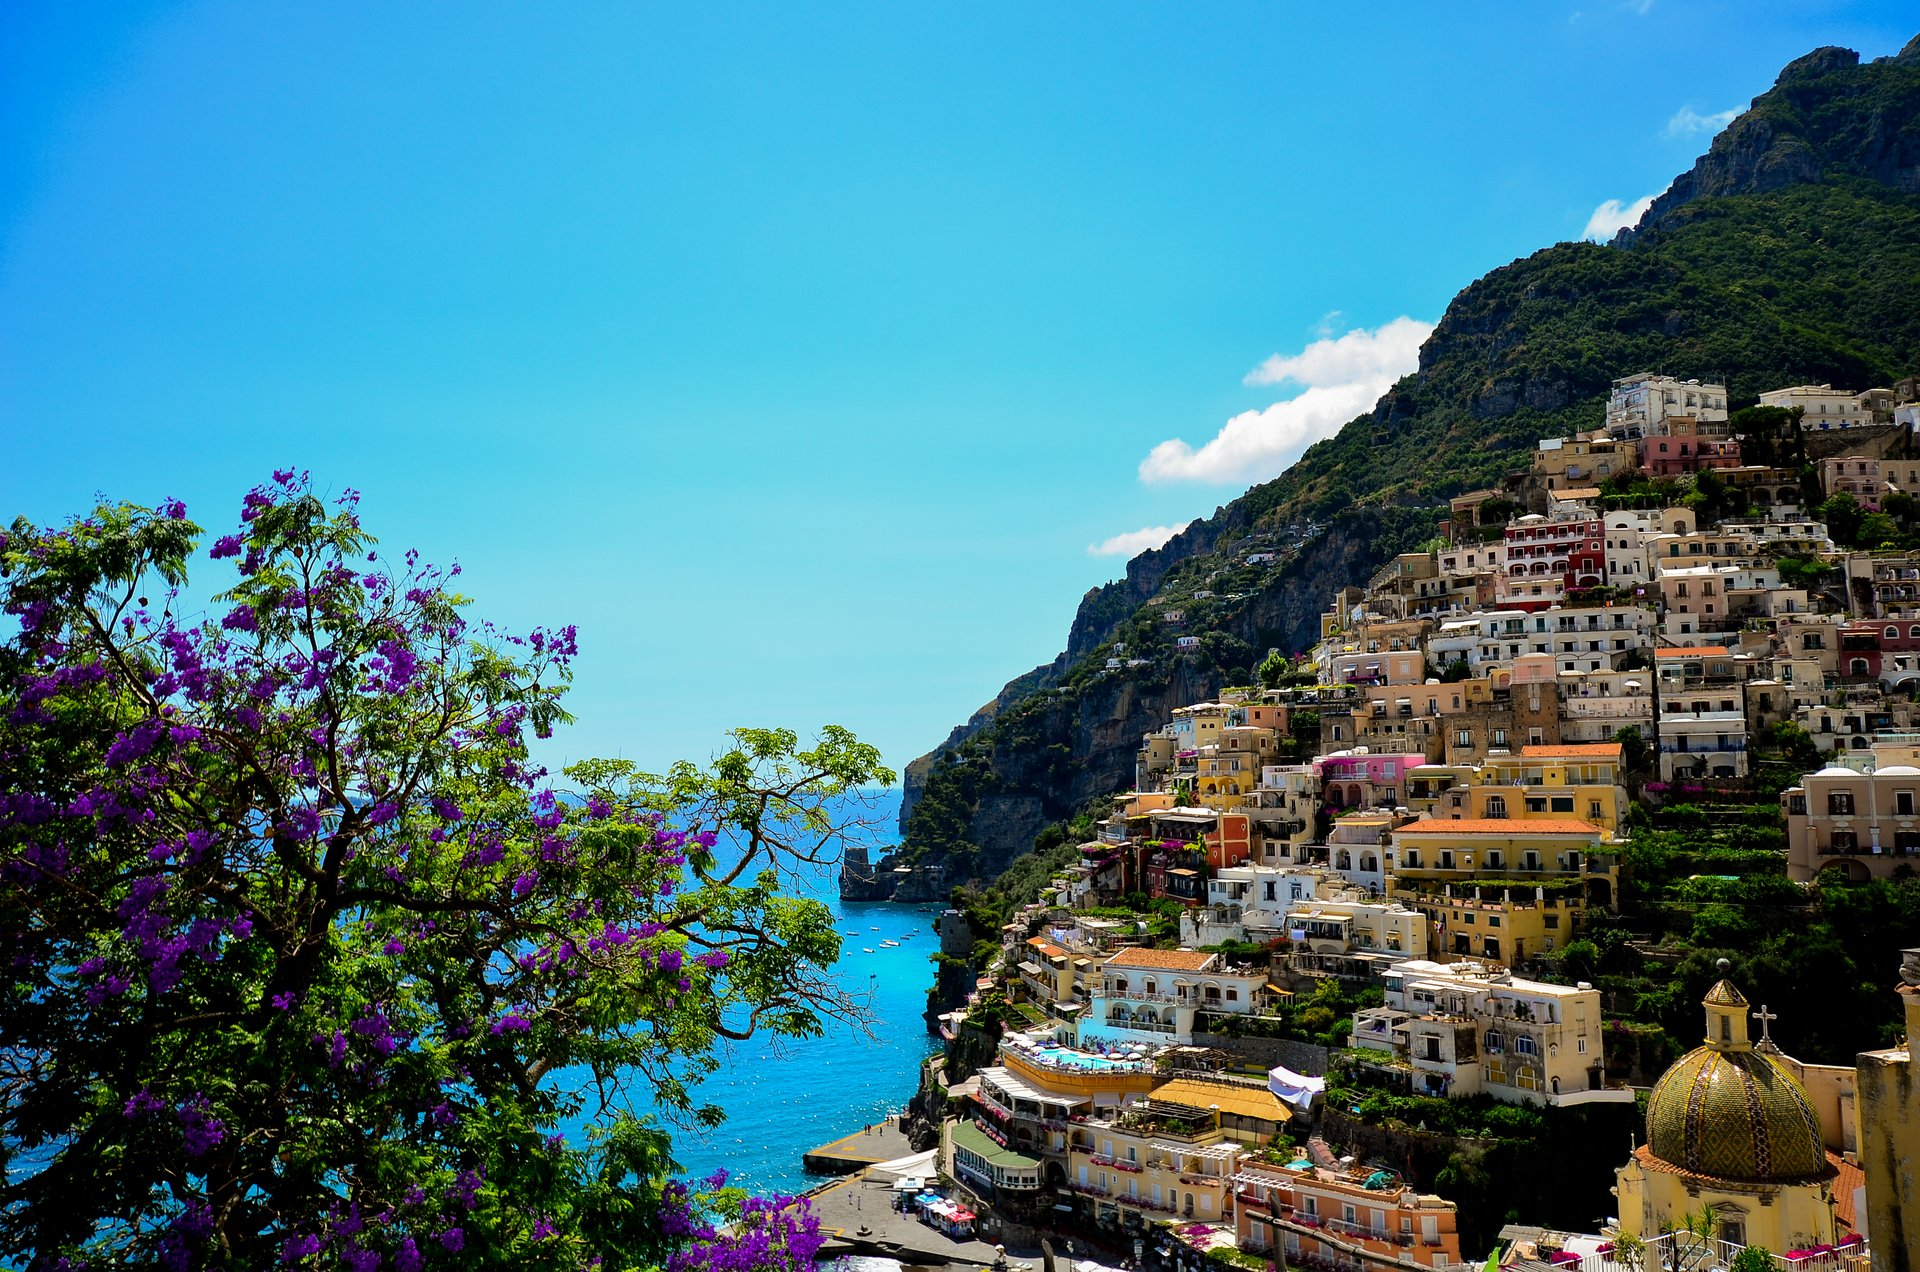 Wisteria in Amalfi Coast - Best Time